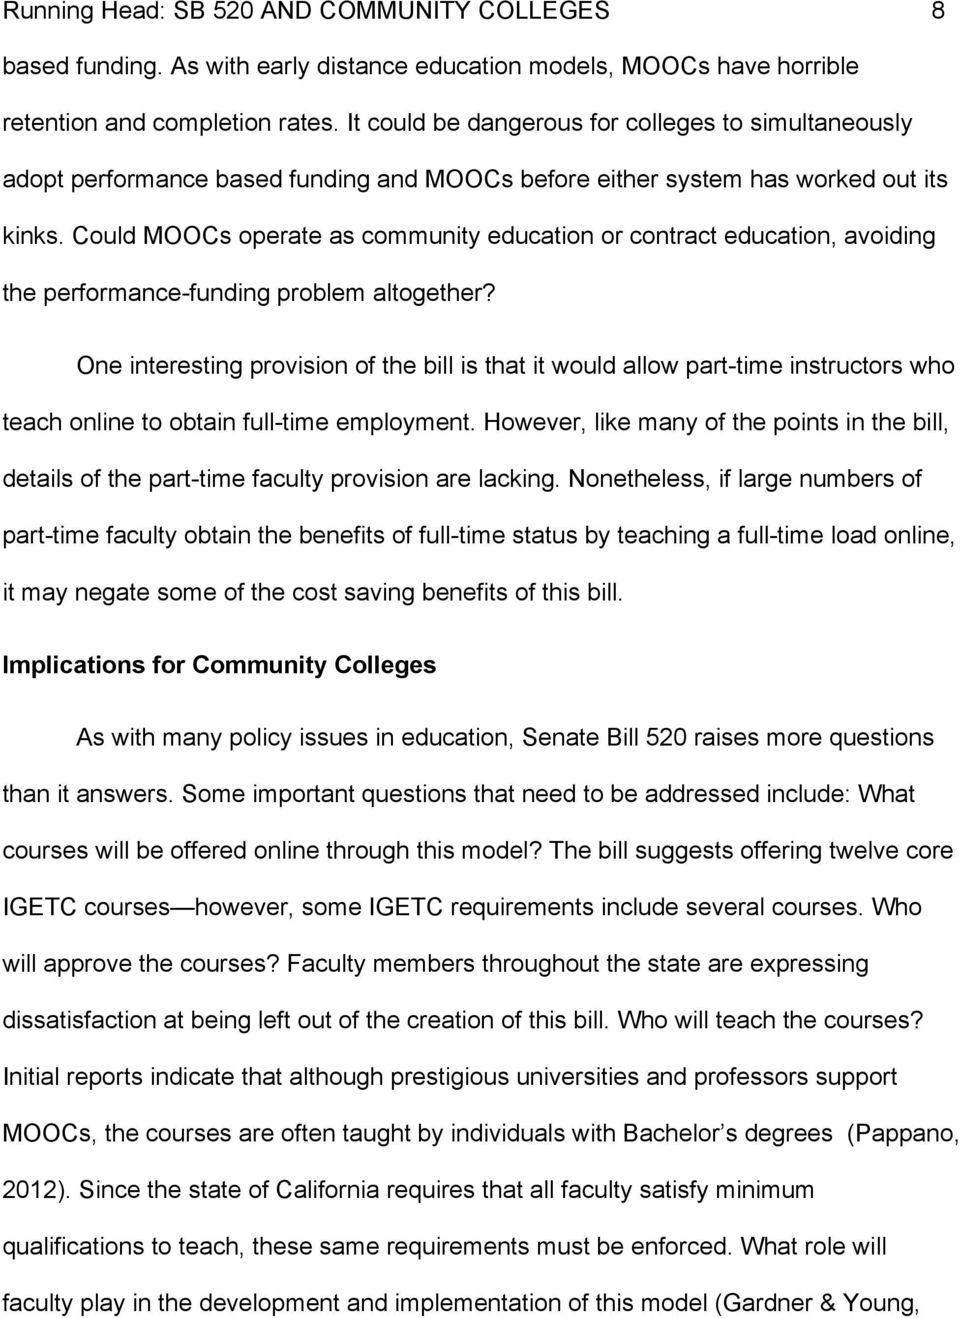 Could MOOCs operate as community education or contract education, avoiding the performance-funding problem altogether?